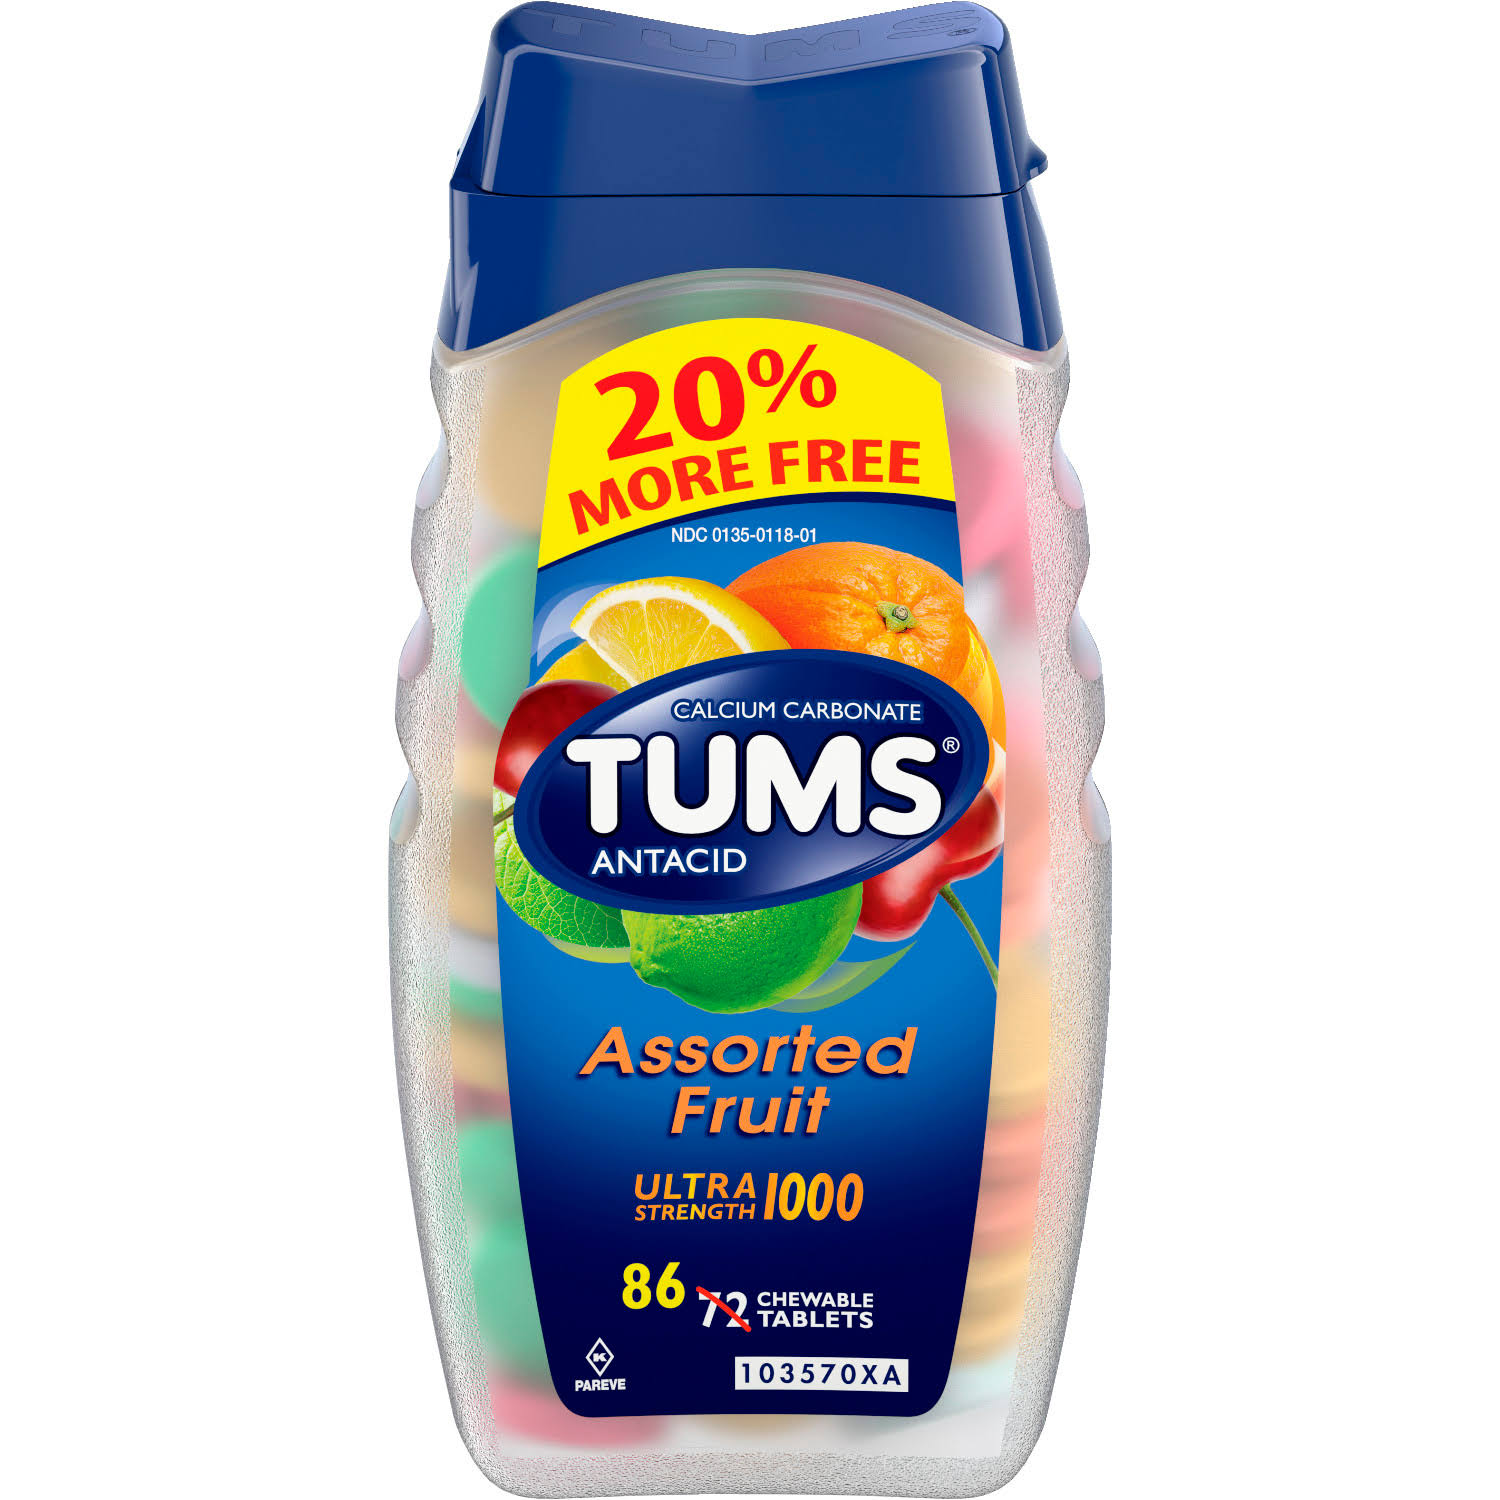 Tums Antacid Ultra Strength 1000 - 86 Chewable Tablets, Assorted Fruit - 86 CT86.0 CT